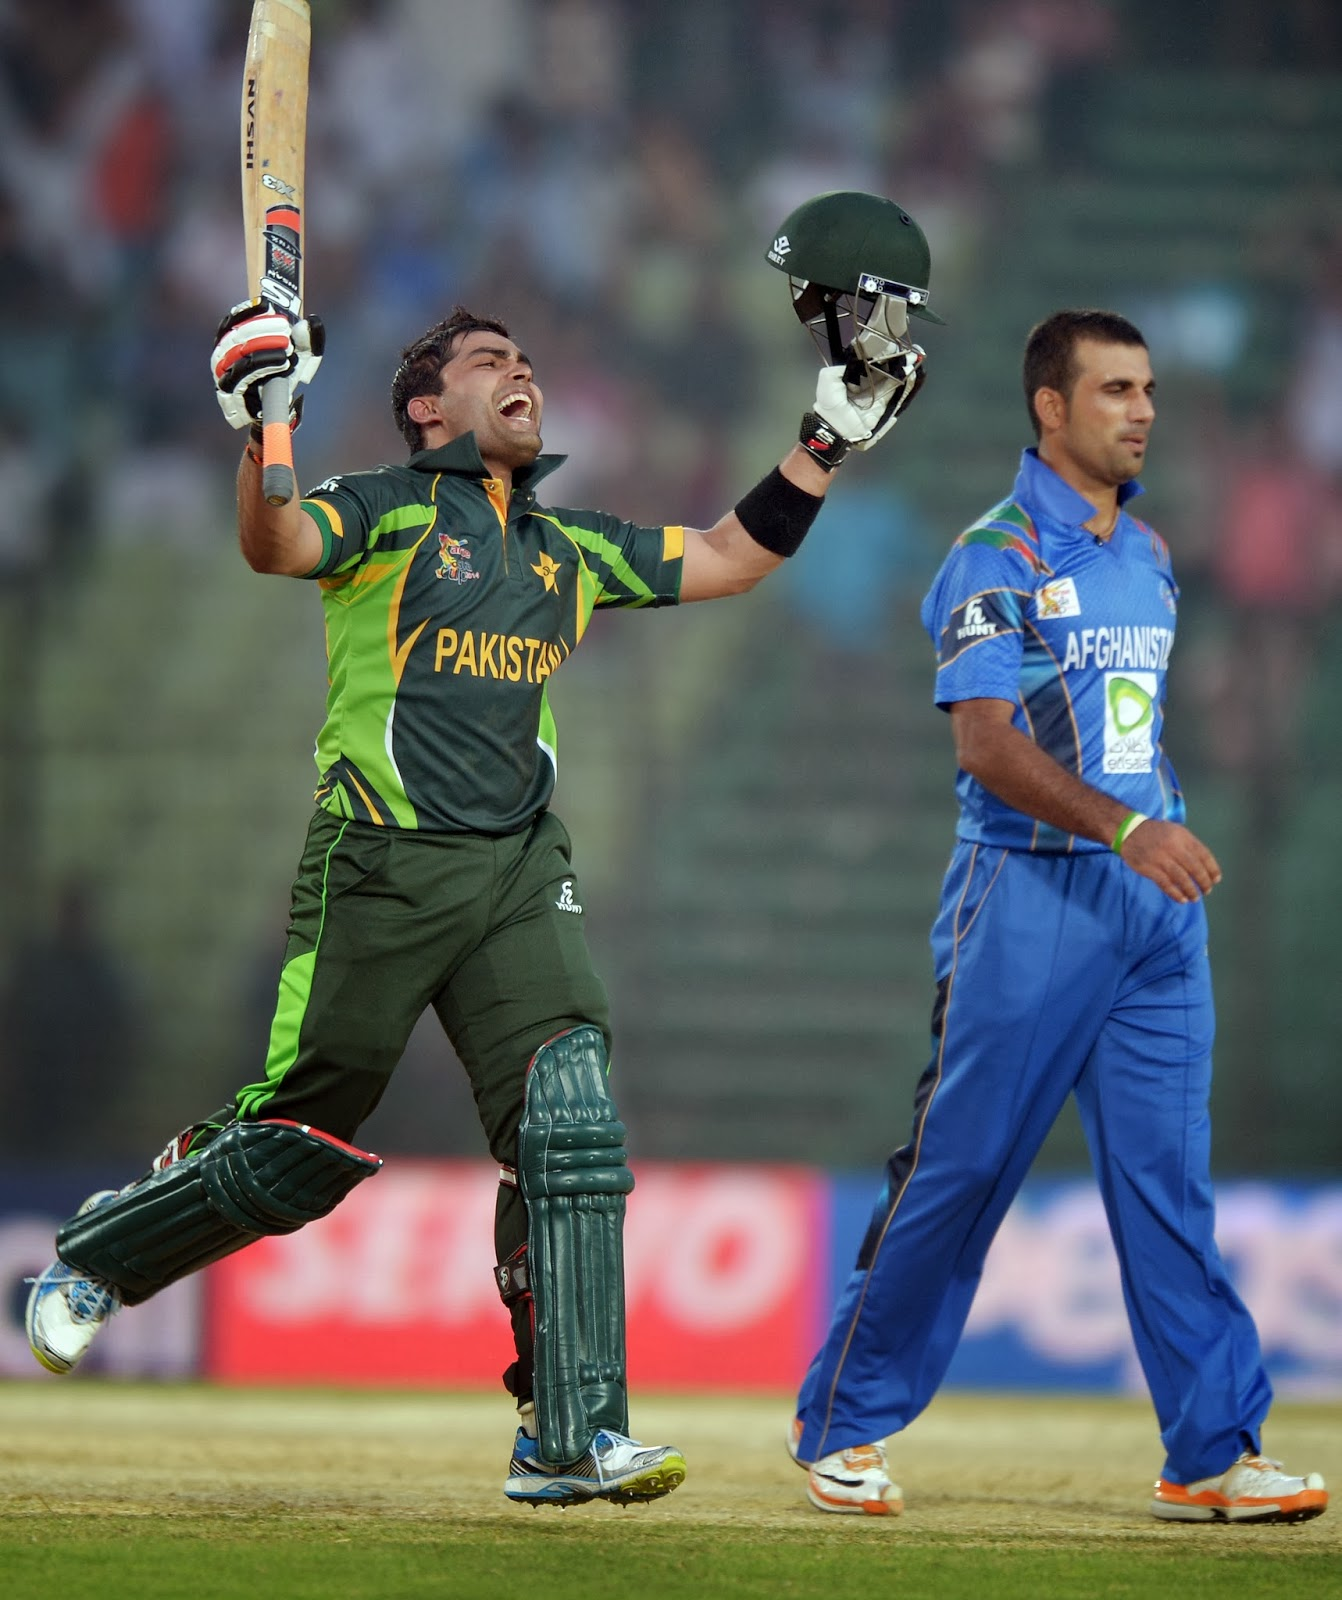 ACC, Asia Cup, Asia Cup 2014, Bangladesh, Bonus-point, Century, Cricket, Cricketer, Pakistan vs Afghanistan, Pakistan Won, Sports, Third Match, Tournament, Umer Akmal, Umer Gul, Winner,